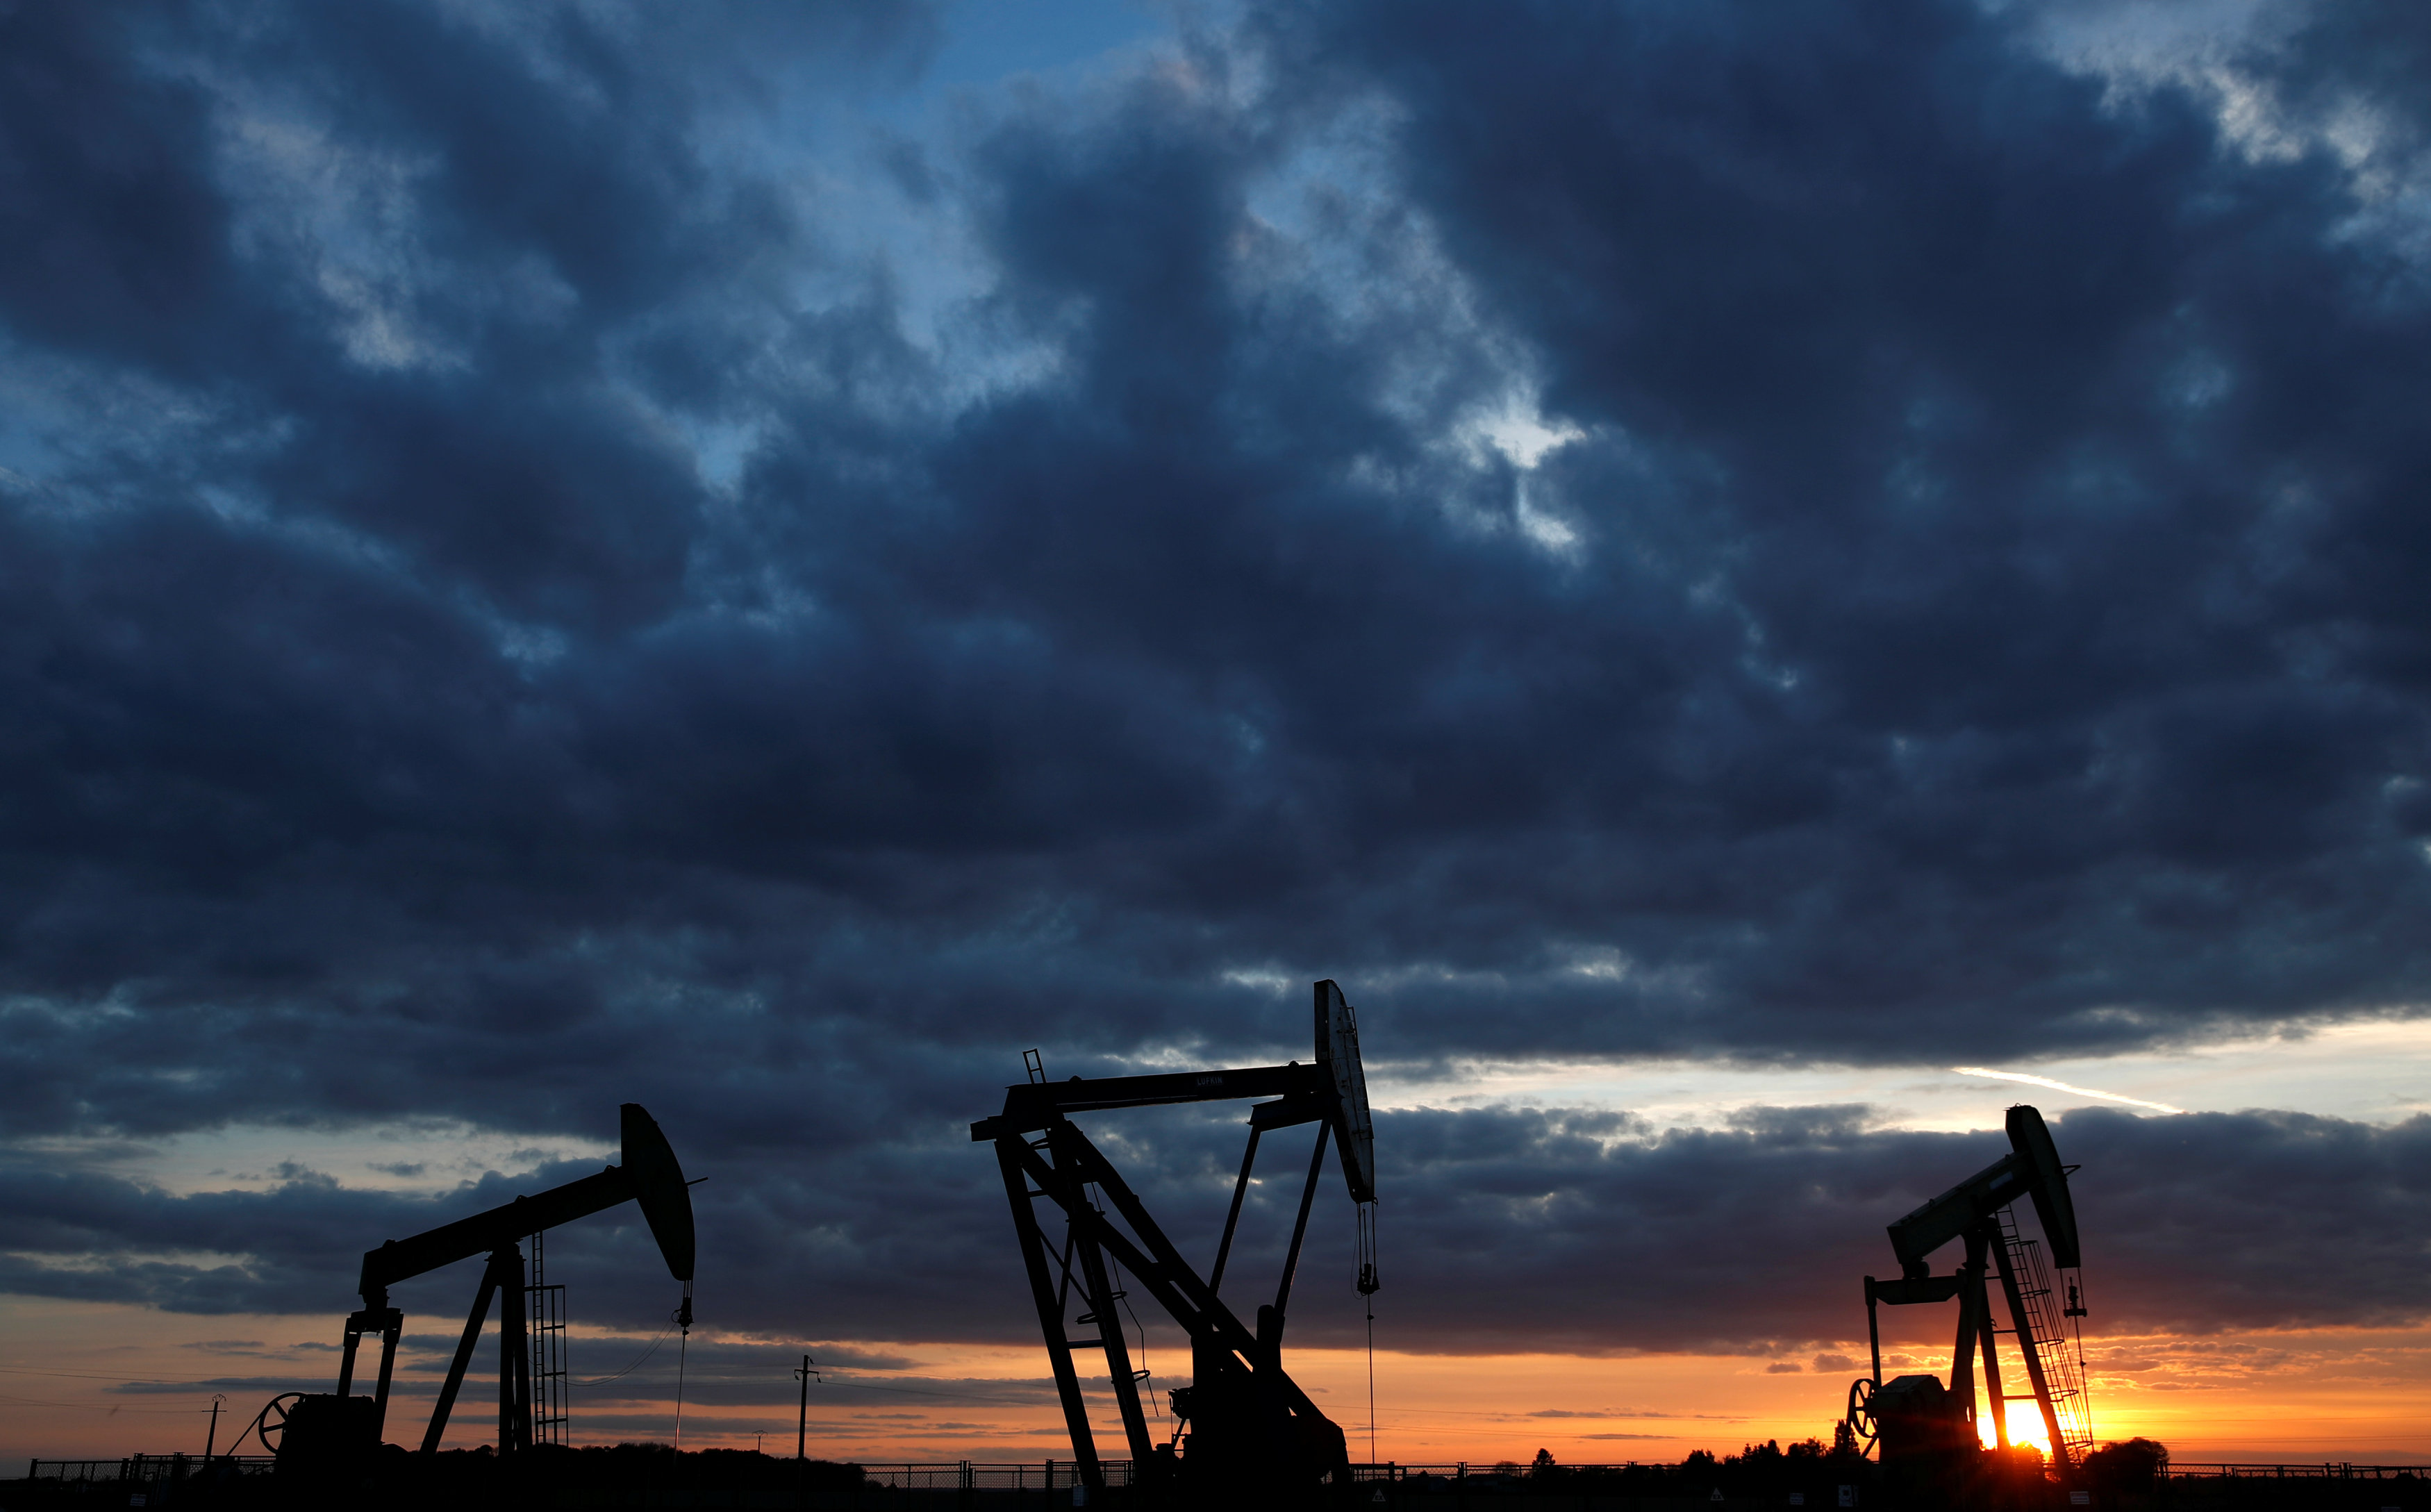 Opec discipline, healthy demand likely to power oil rally through 2018